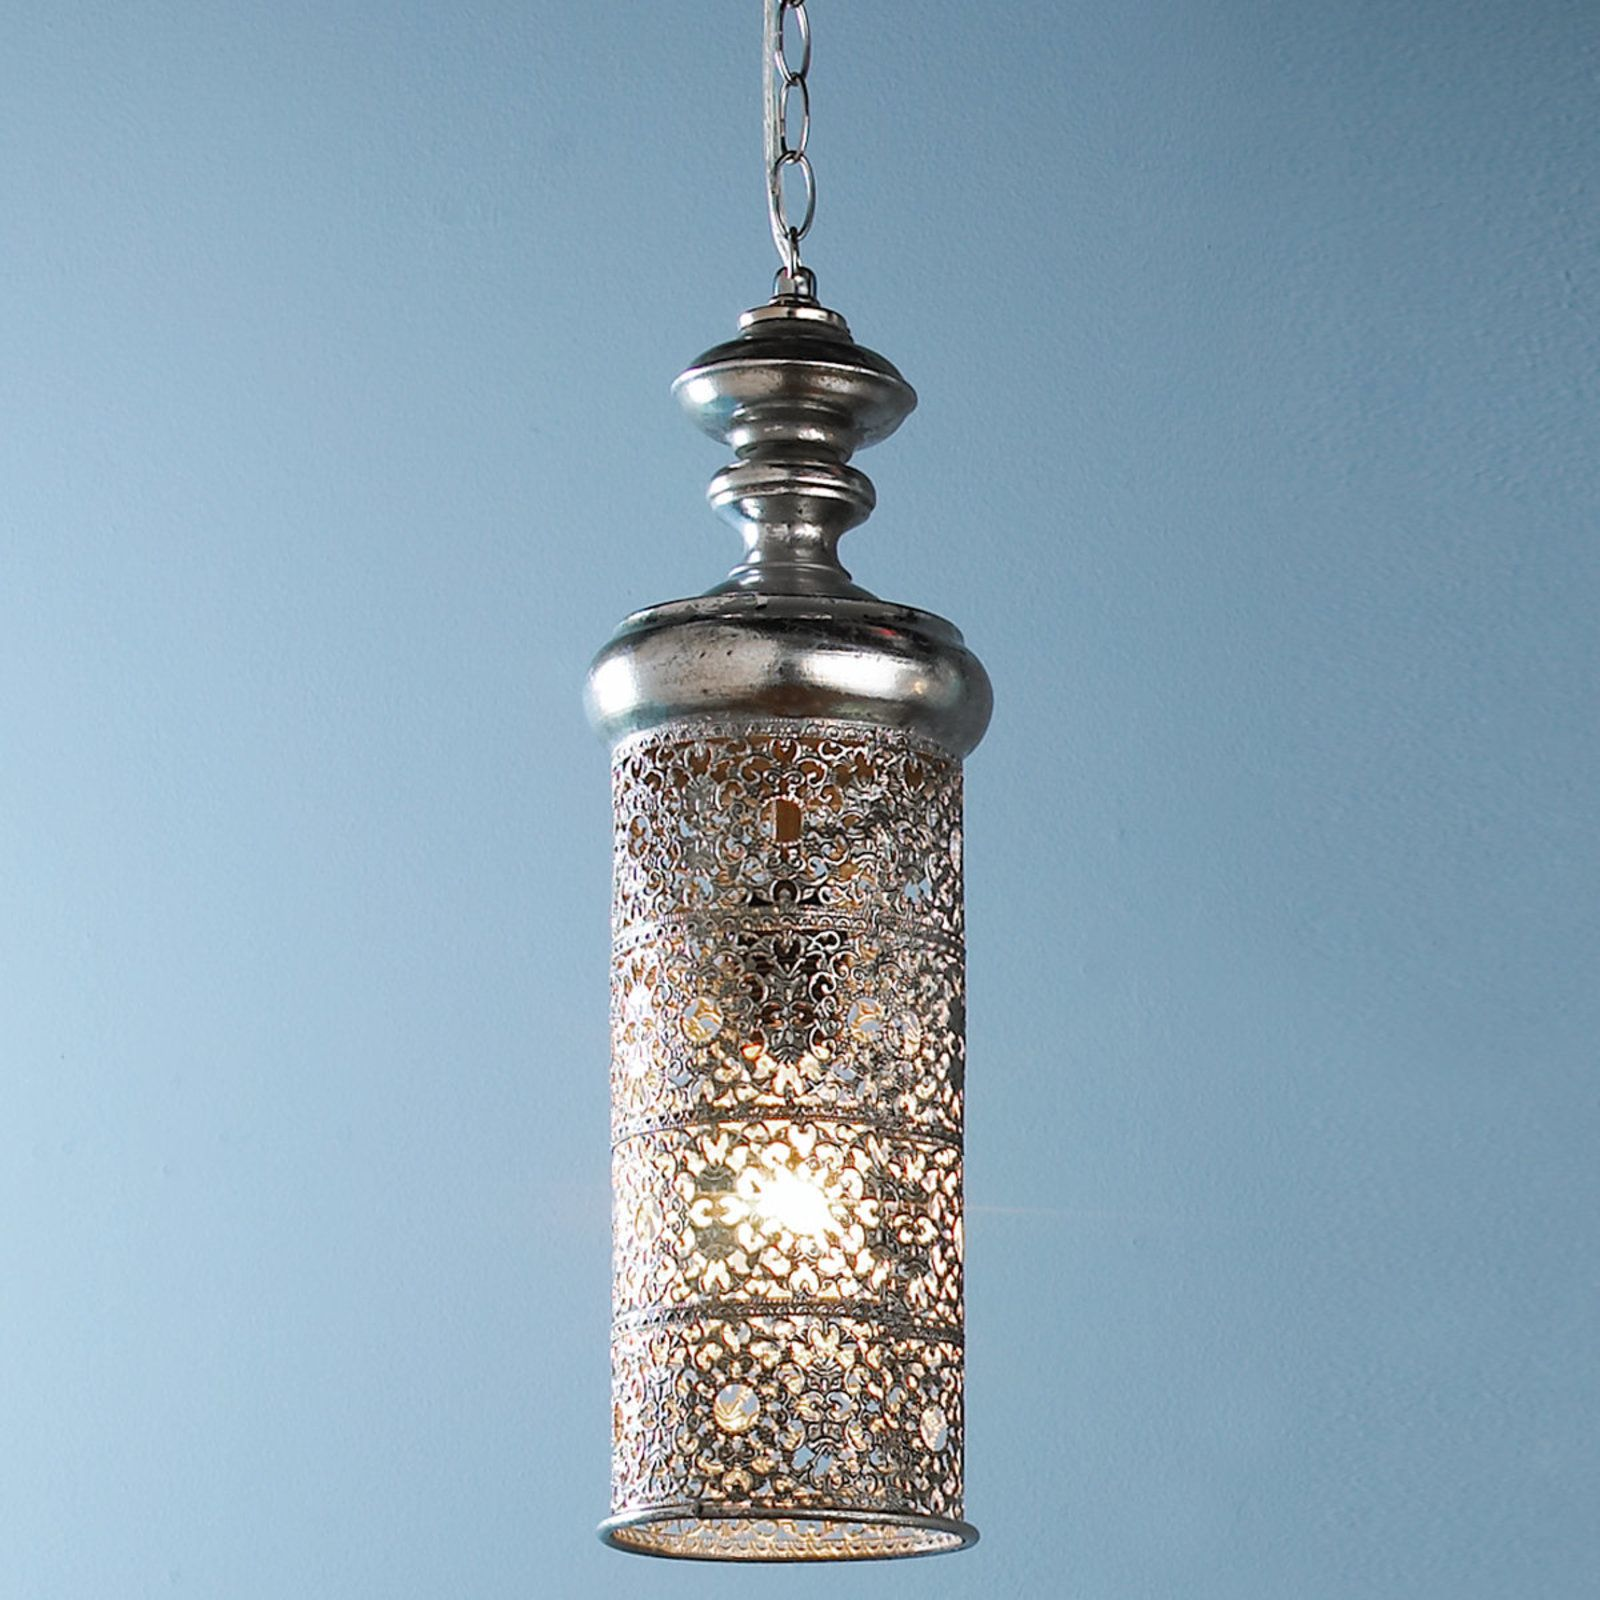 walnut pendant product ceiling archetypal lighting hr cylinder off light